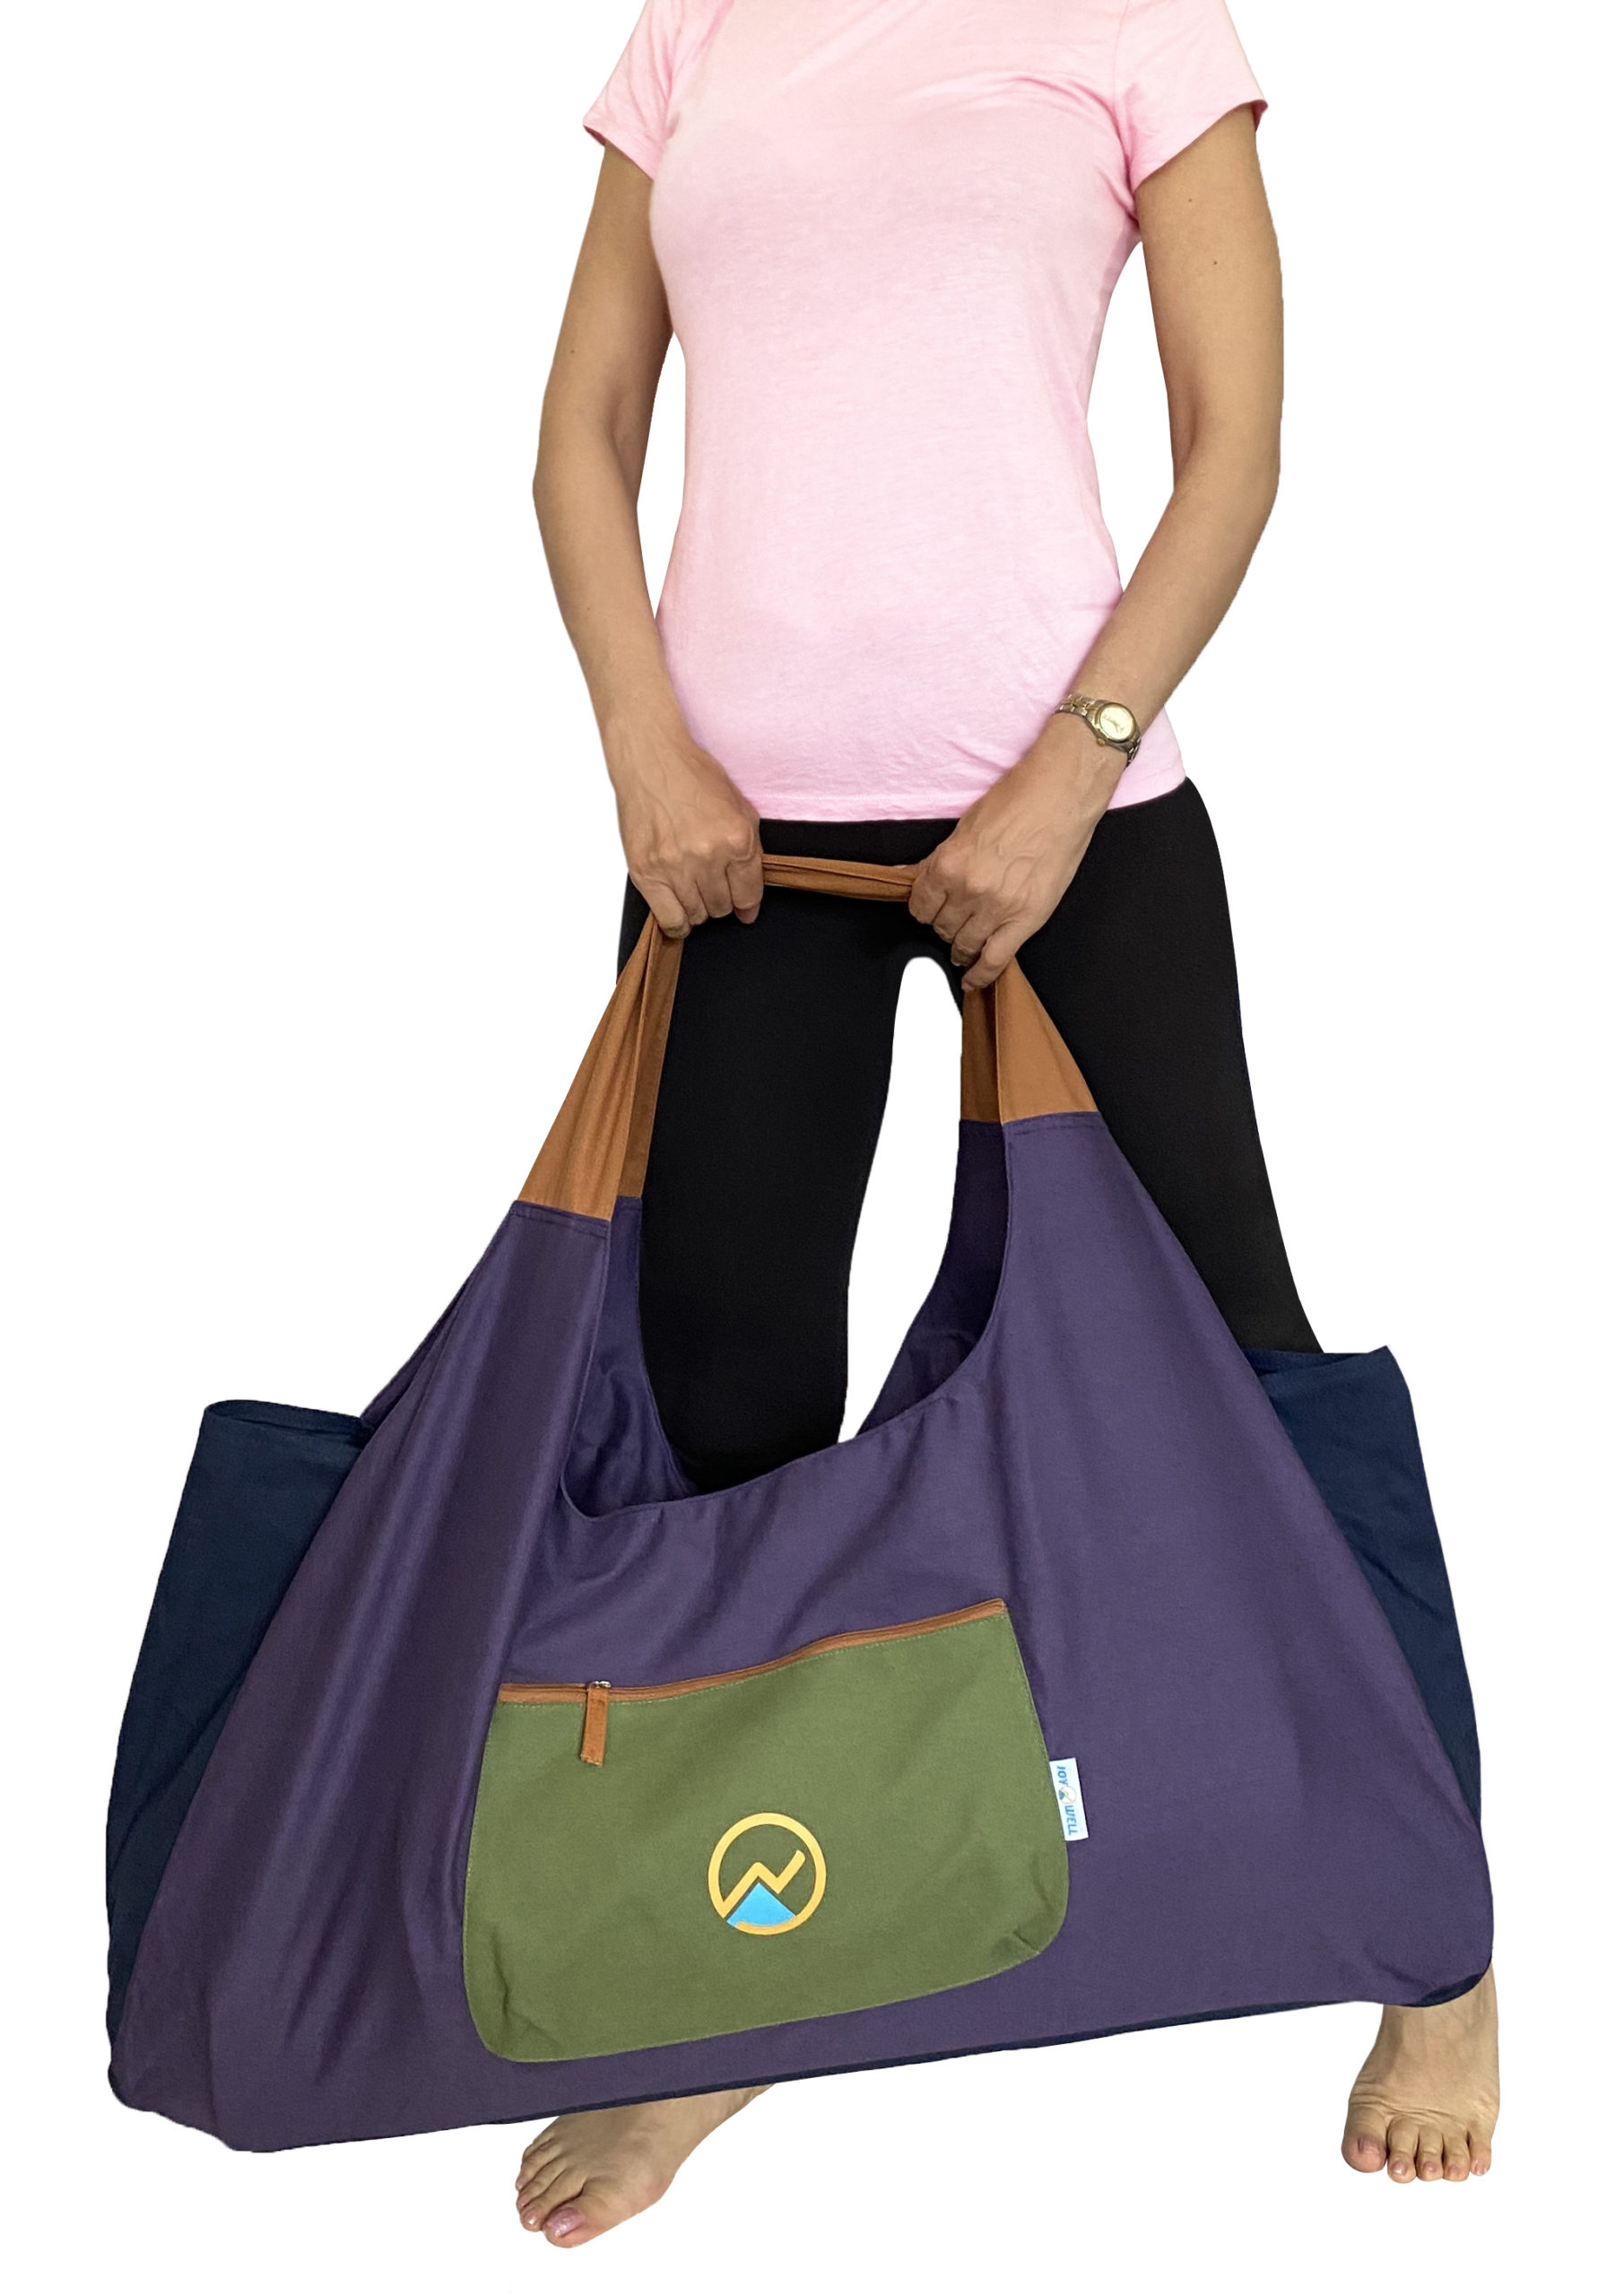 Purple Brand New Yoga Mat Bag from Yogamatters with strap and zip 100/% cotton